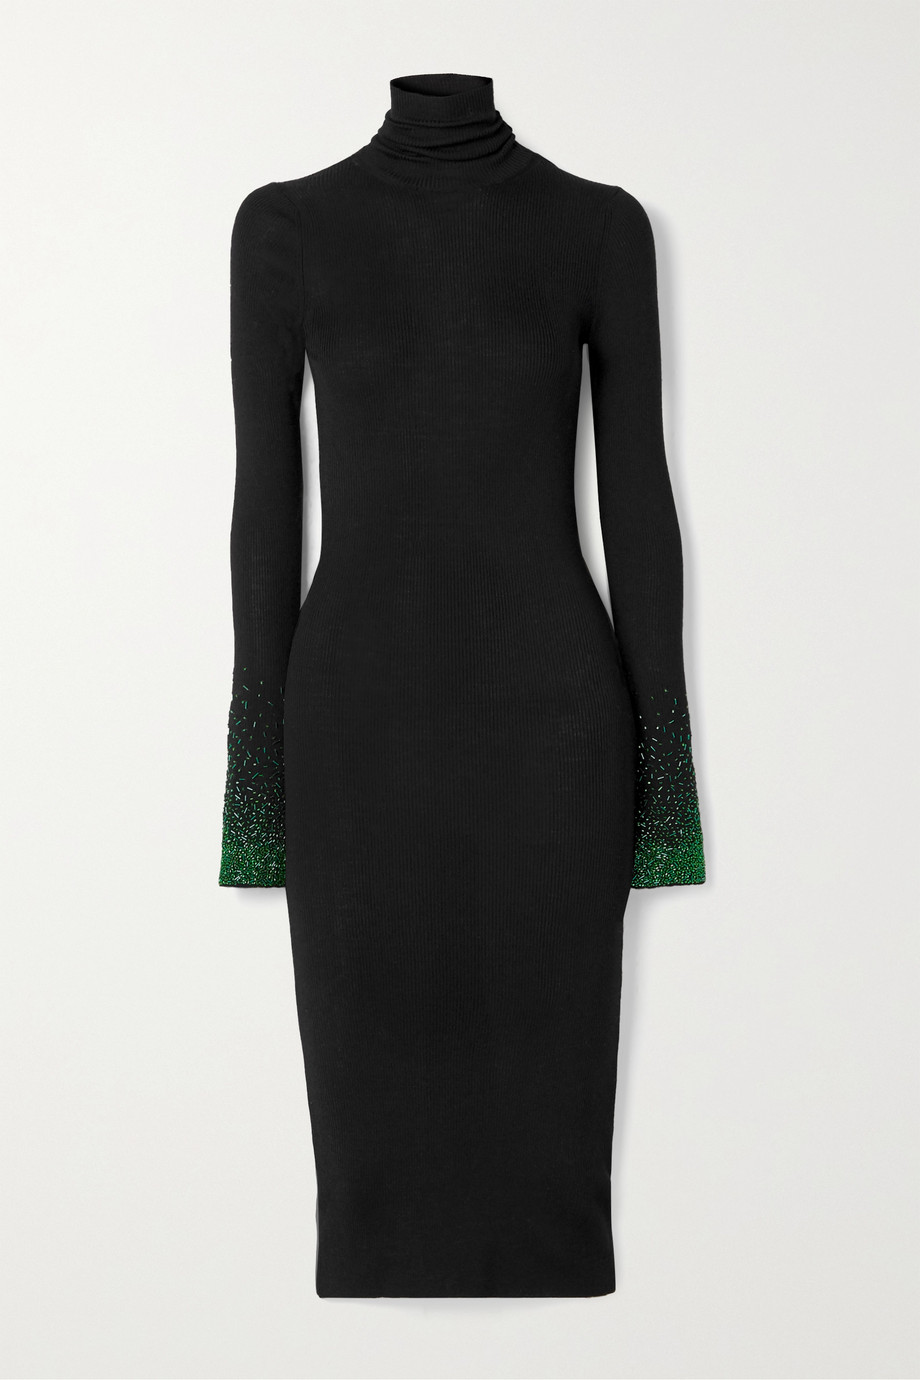 Loewe Embellished ribbed wool turtleneck dress